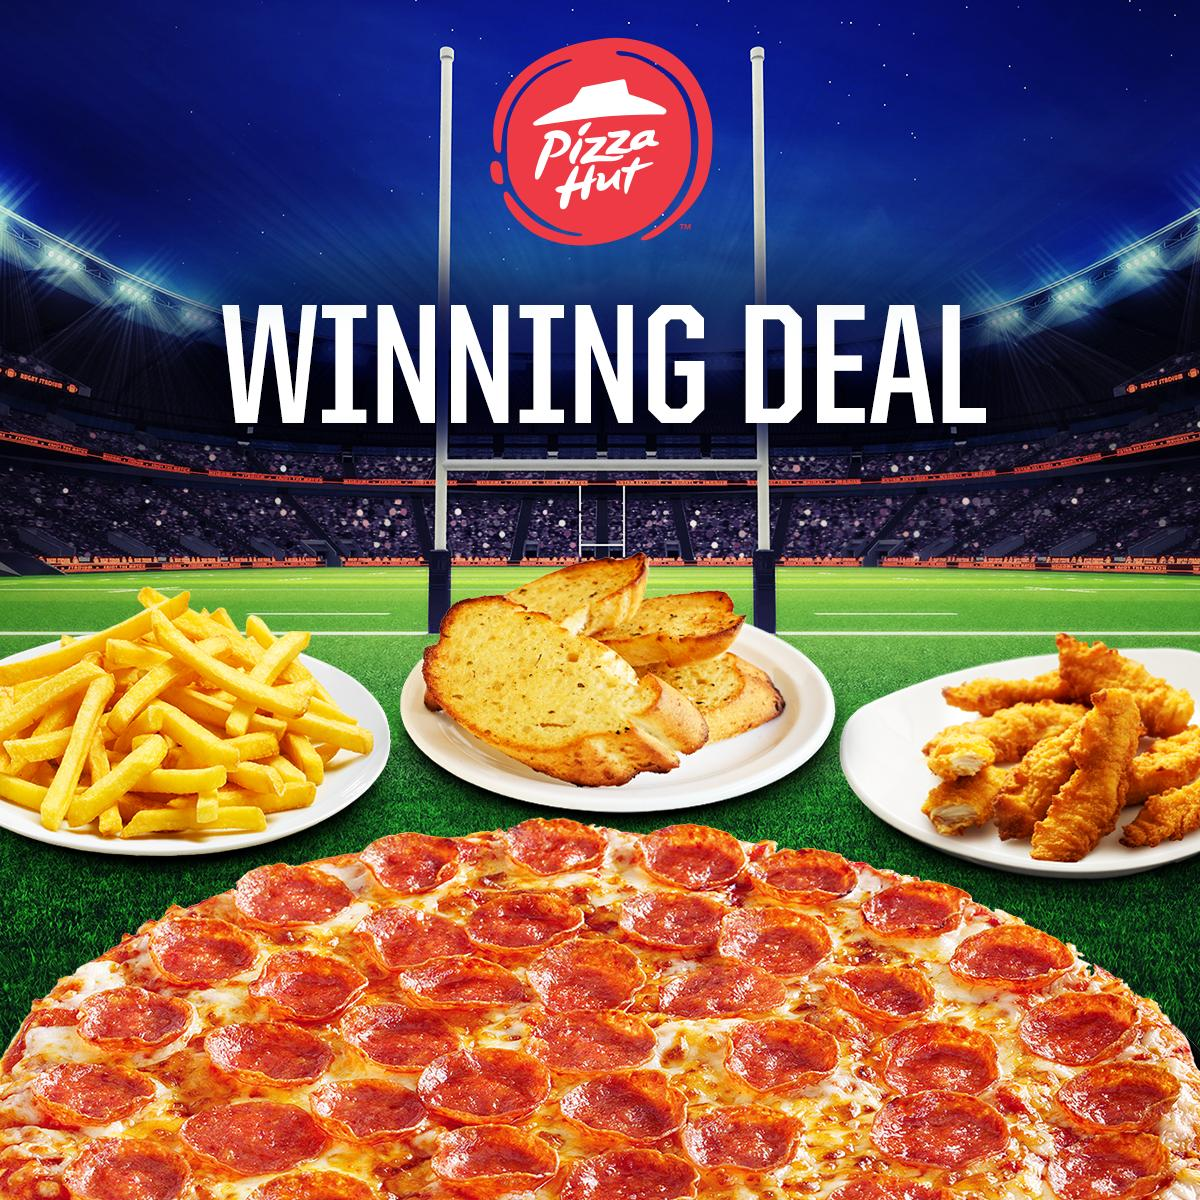 With Ireland playing again this weekend, get in the winning mood with this delicious (and fitting) meal deal 🙌 Who's feeling hungry?? https://t.co/FZ74HJHFSA